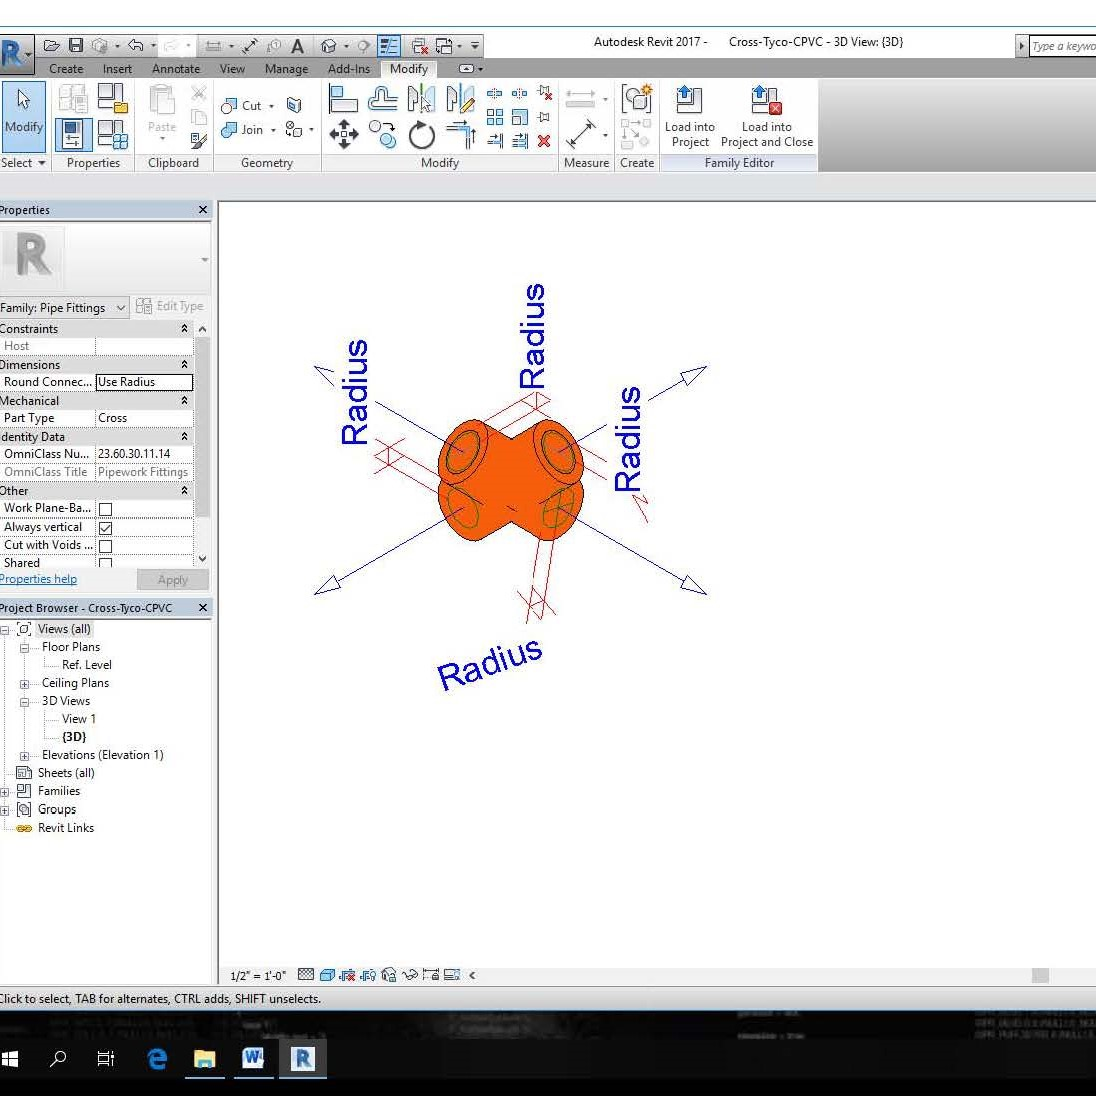 CPVC Fire Sprinkler Piping Fittings - Revit Files - CAD Files, DWG files,  Plans and Details